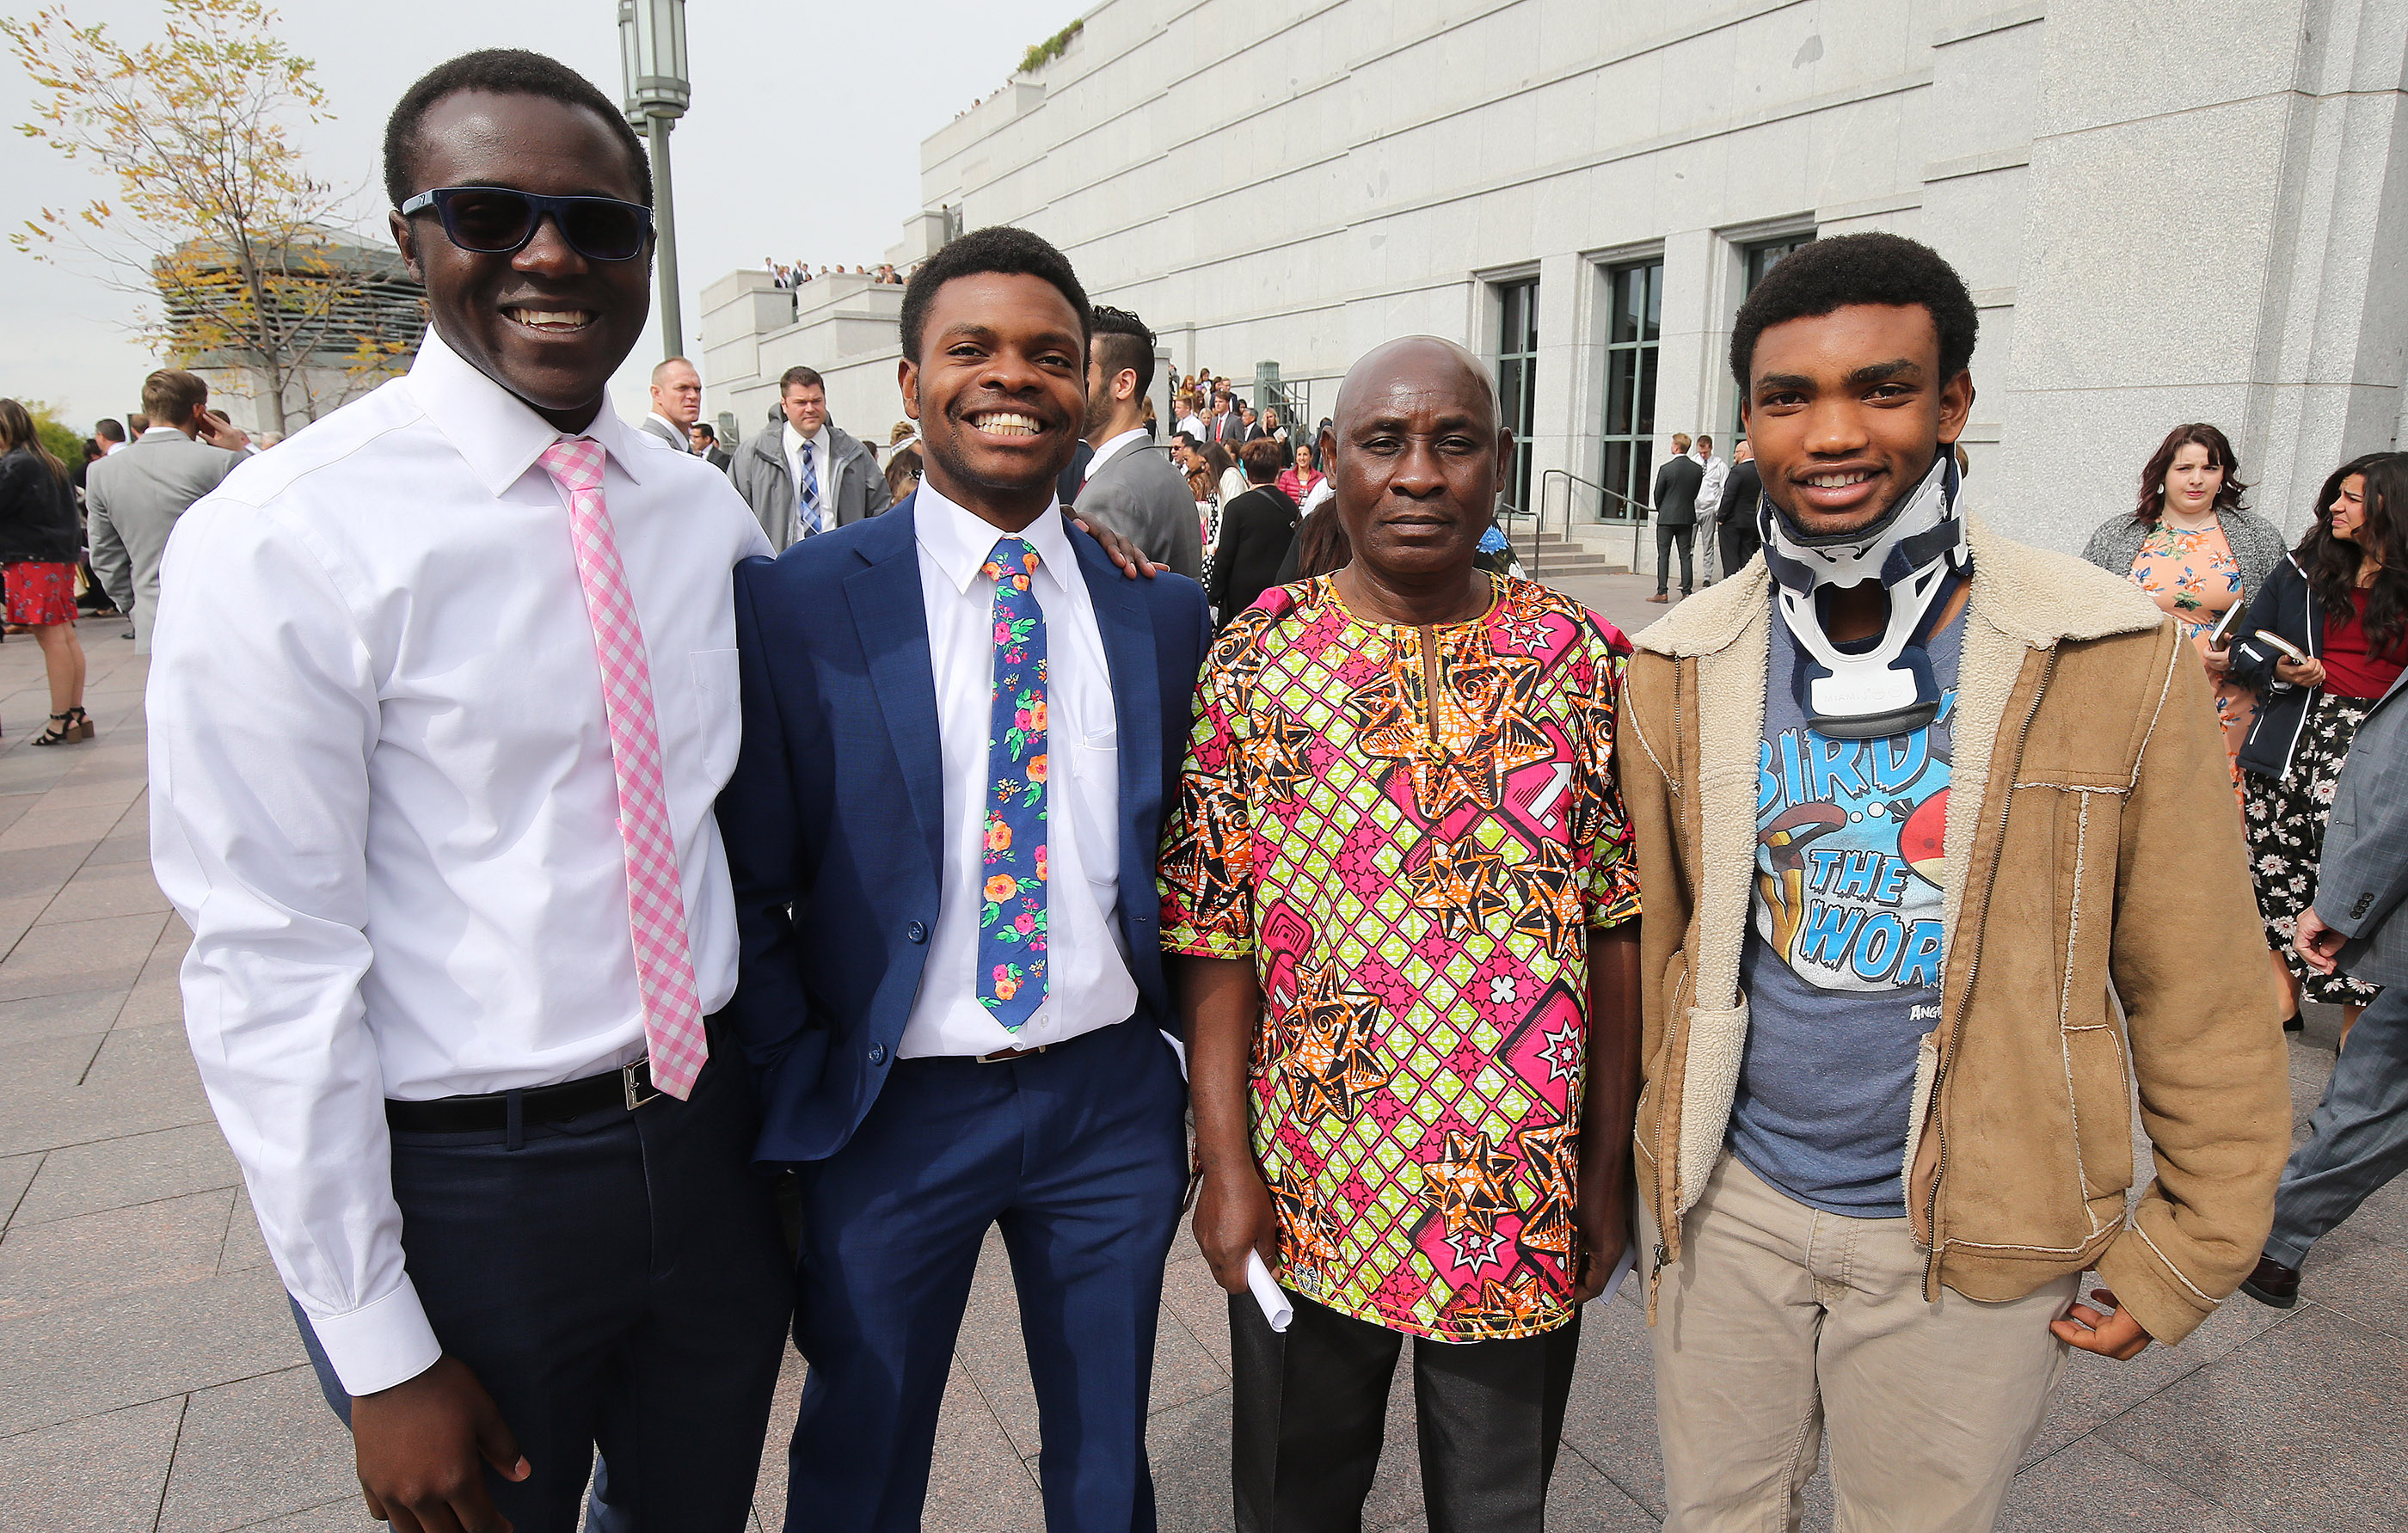 Amani Mitonzi, John Jones, Kasindi Fataki and Ngambo Gasabato attend the 188th Semiannual General Conference of The Church of Jesus Christ of Latter-day Saints in downtown Salt Lake City on Saturday, Oct. 6, 2018.